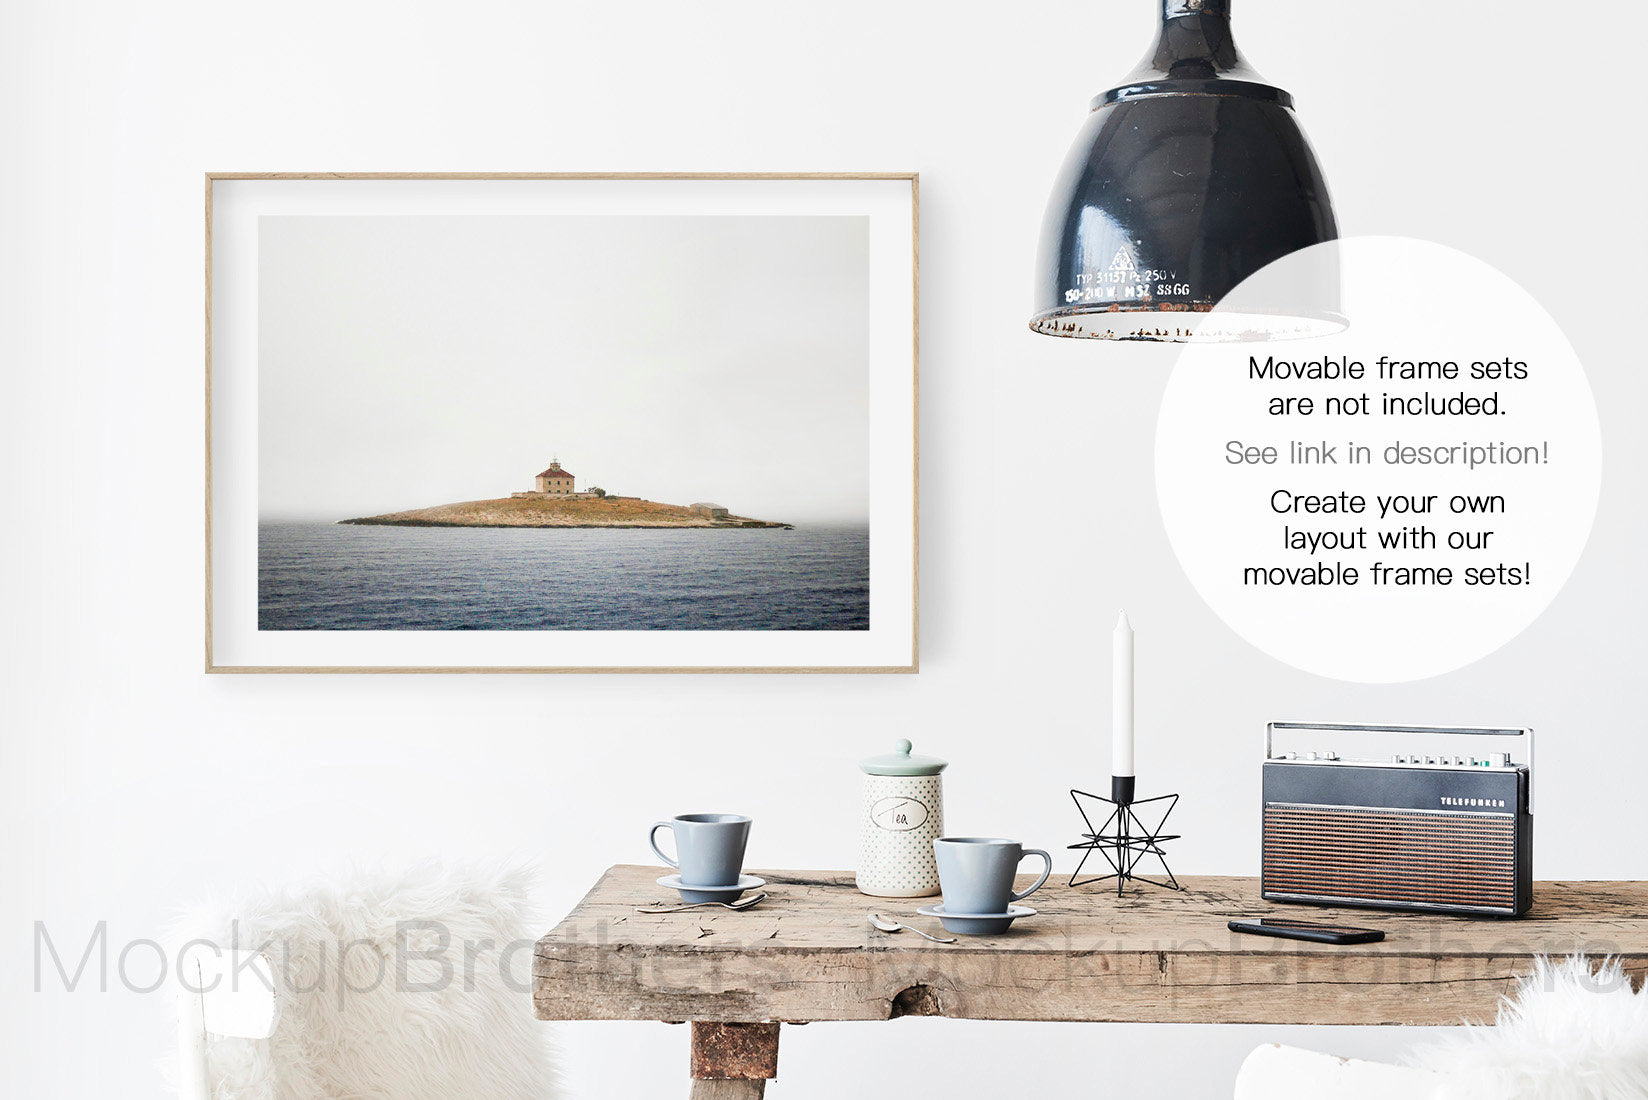 Frame mockup in modern interior by Mockup brothers